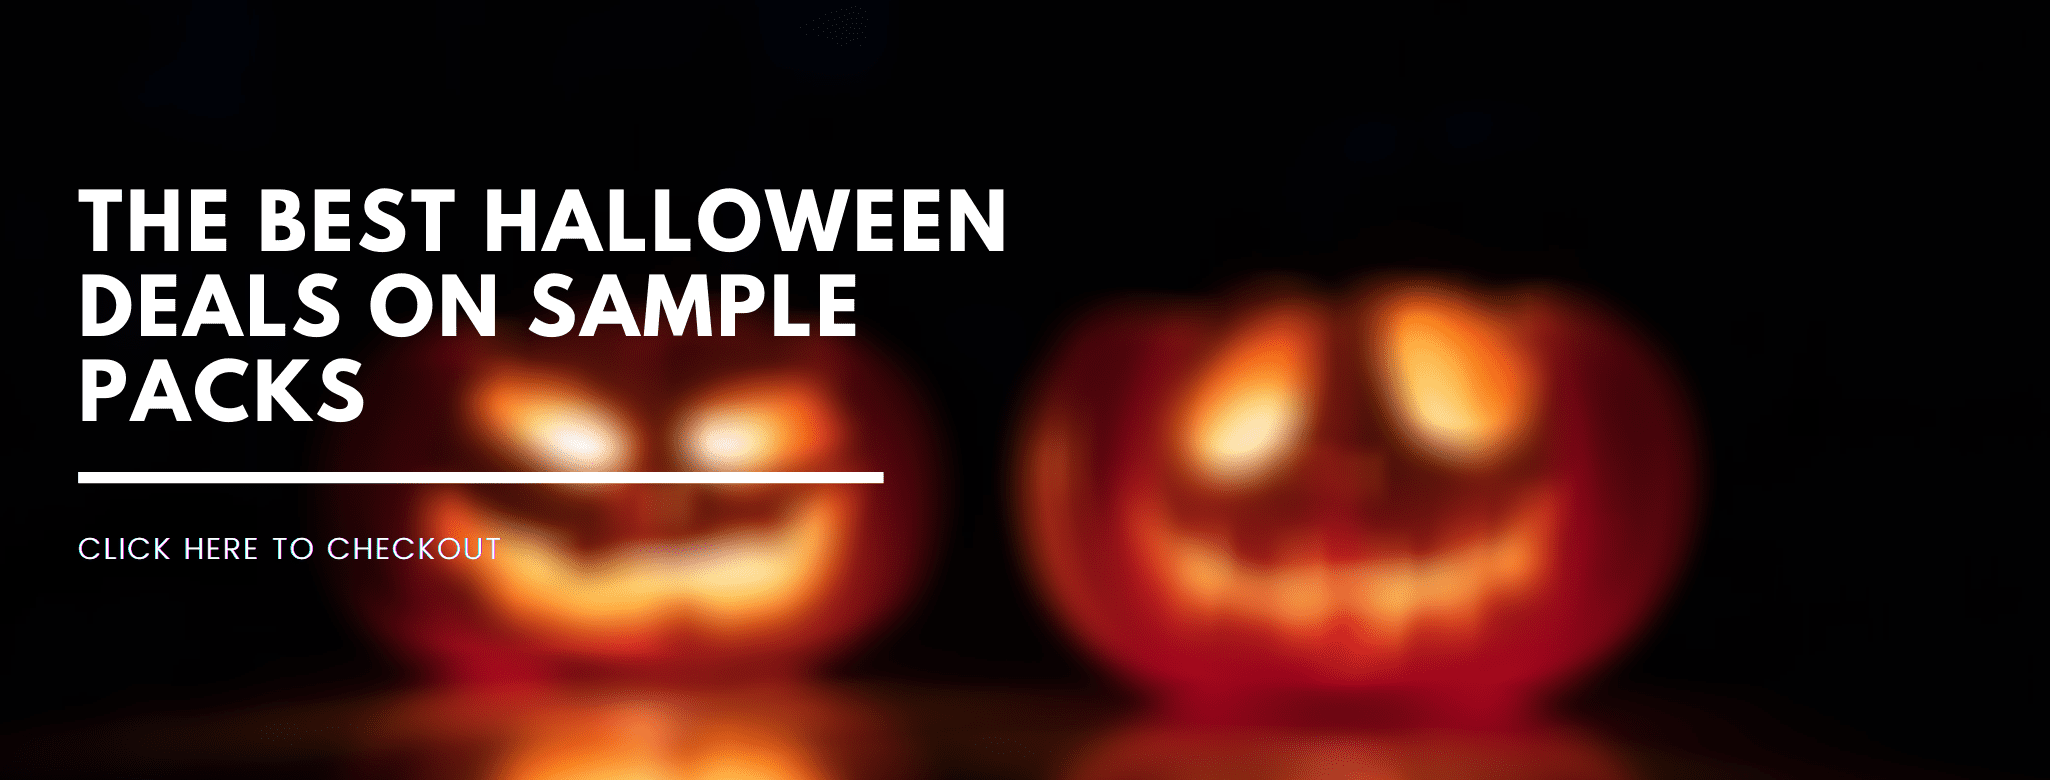 the best halloween deals on sample packs